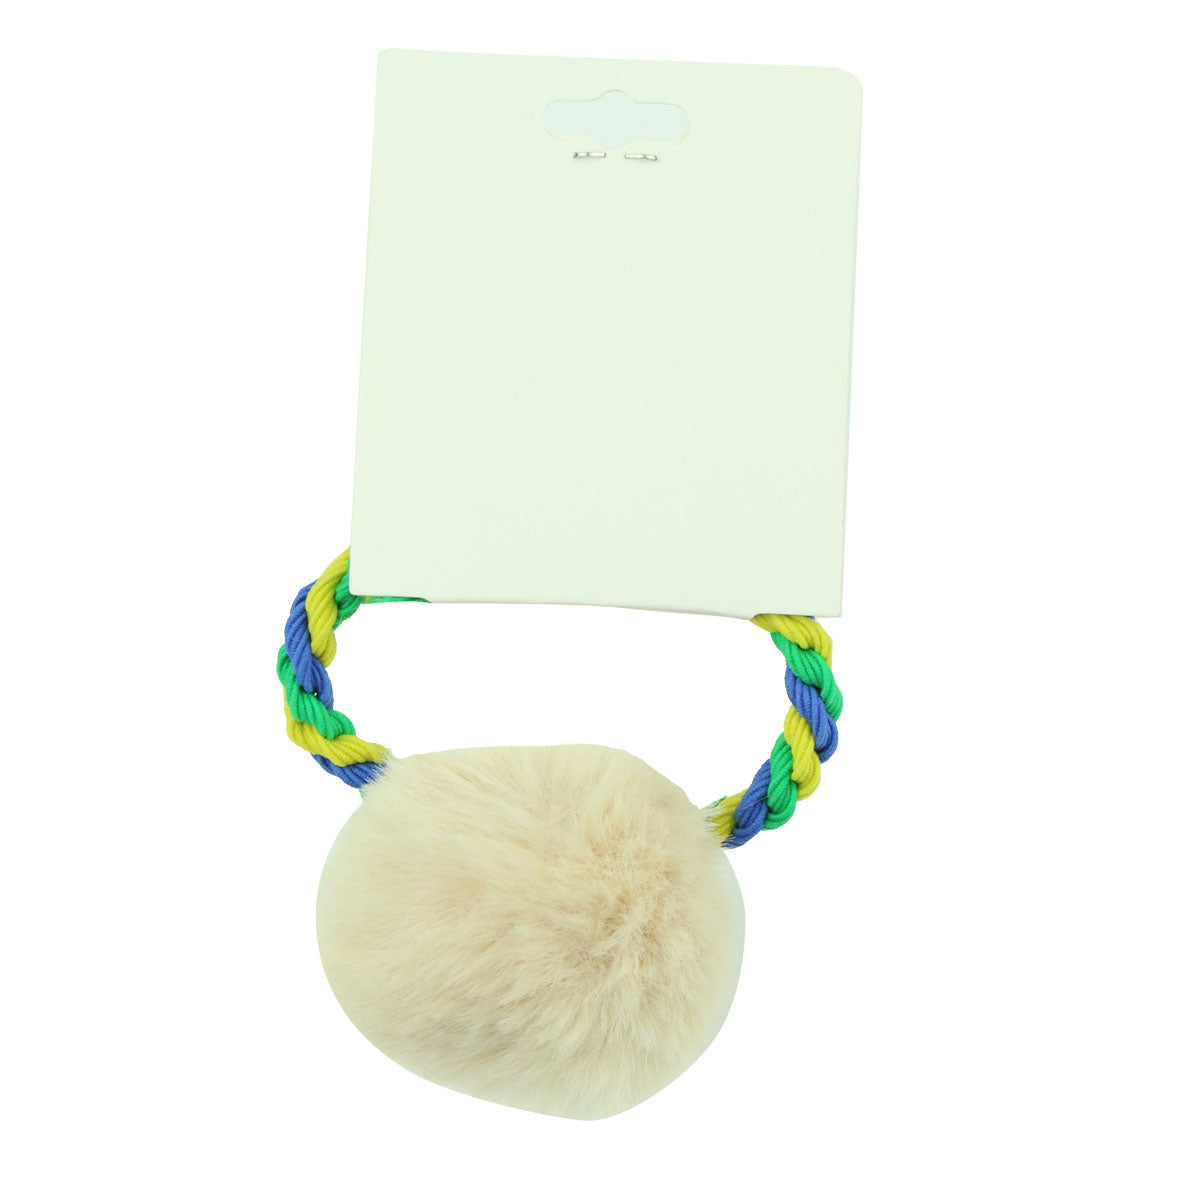 green and blue elastic rope braided ponytail hair holder artificial faux fur pom pom ball hairband6538 - SOHOBUCKS CO.,LIMITED